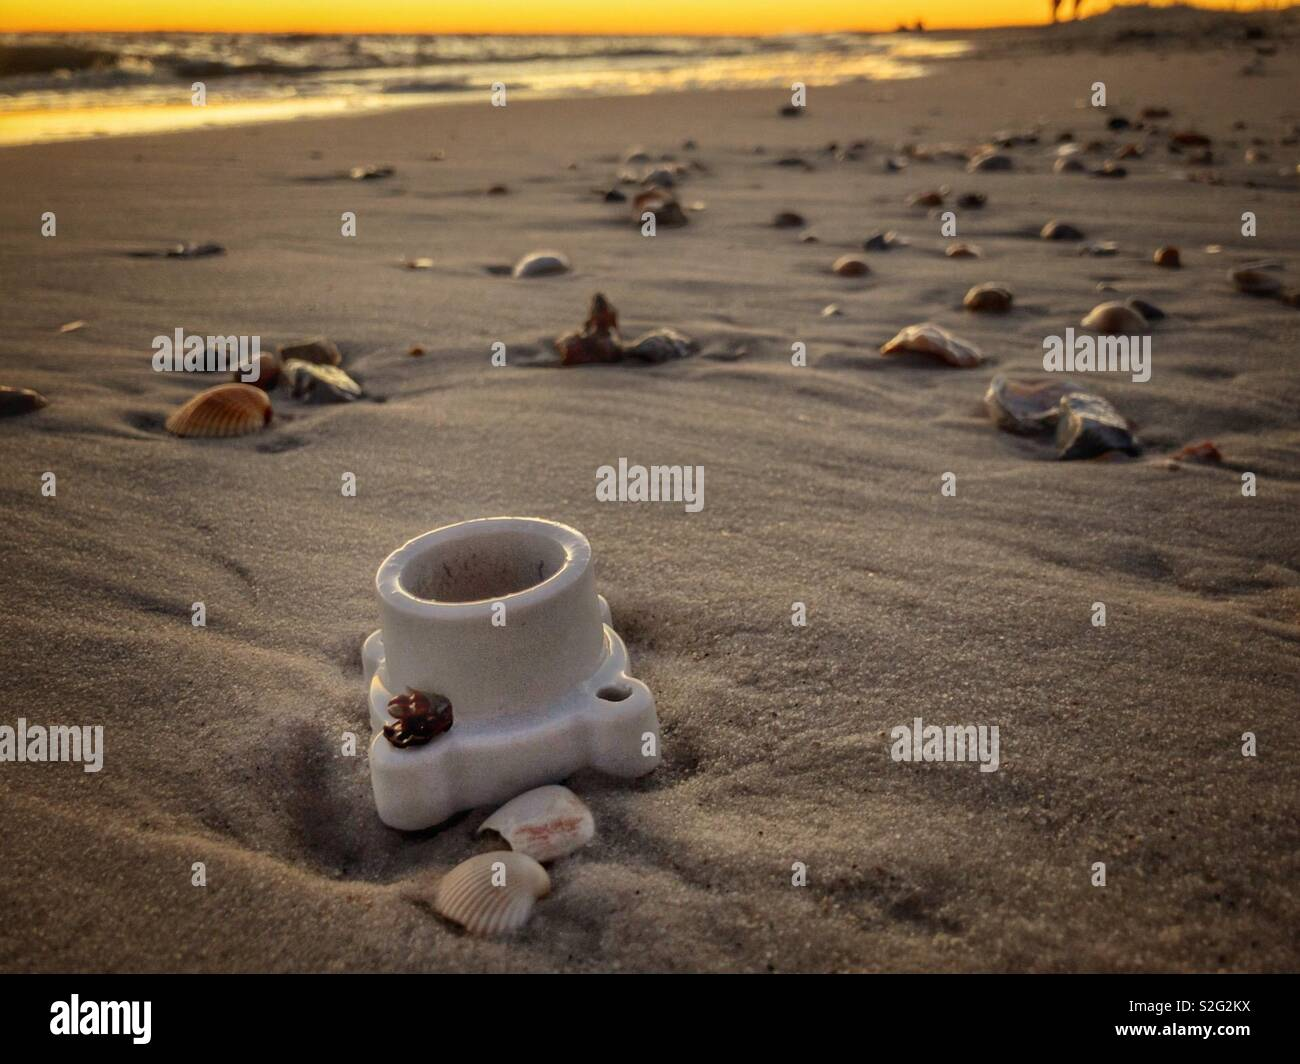 A porcelain light socket cleat receptacle lays on the beach among seashells in Dauphin Island, Alabama. - Stock Image